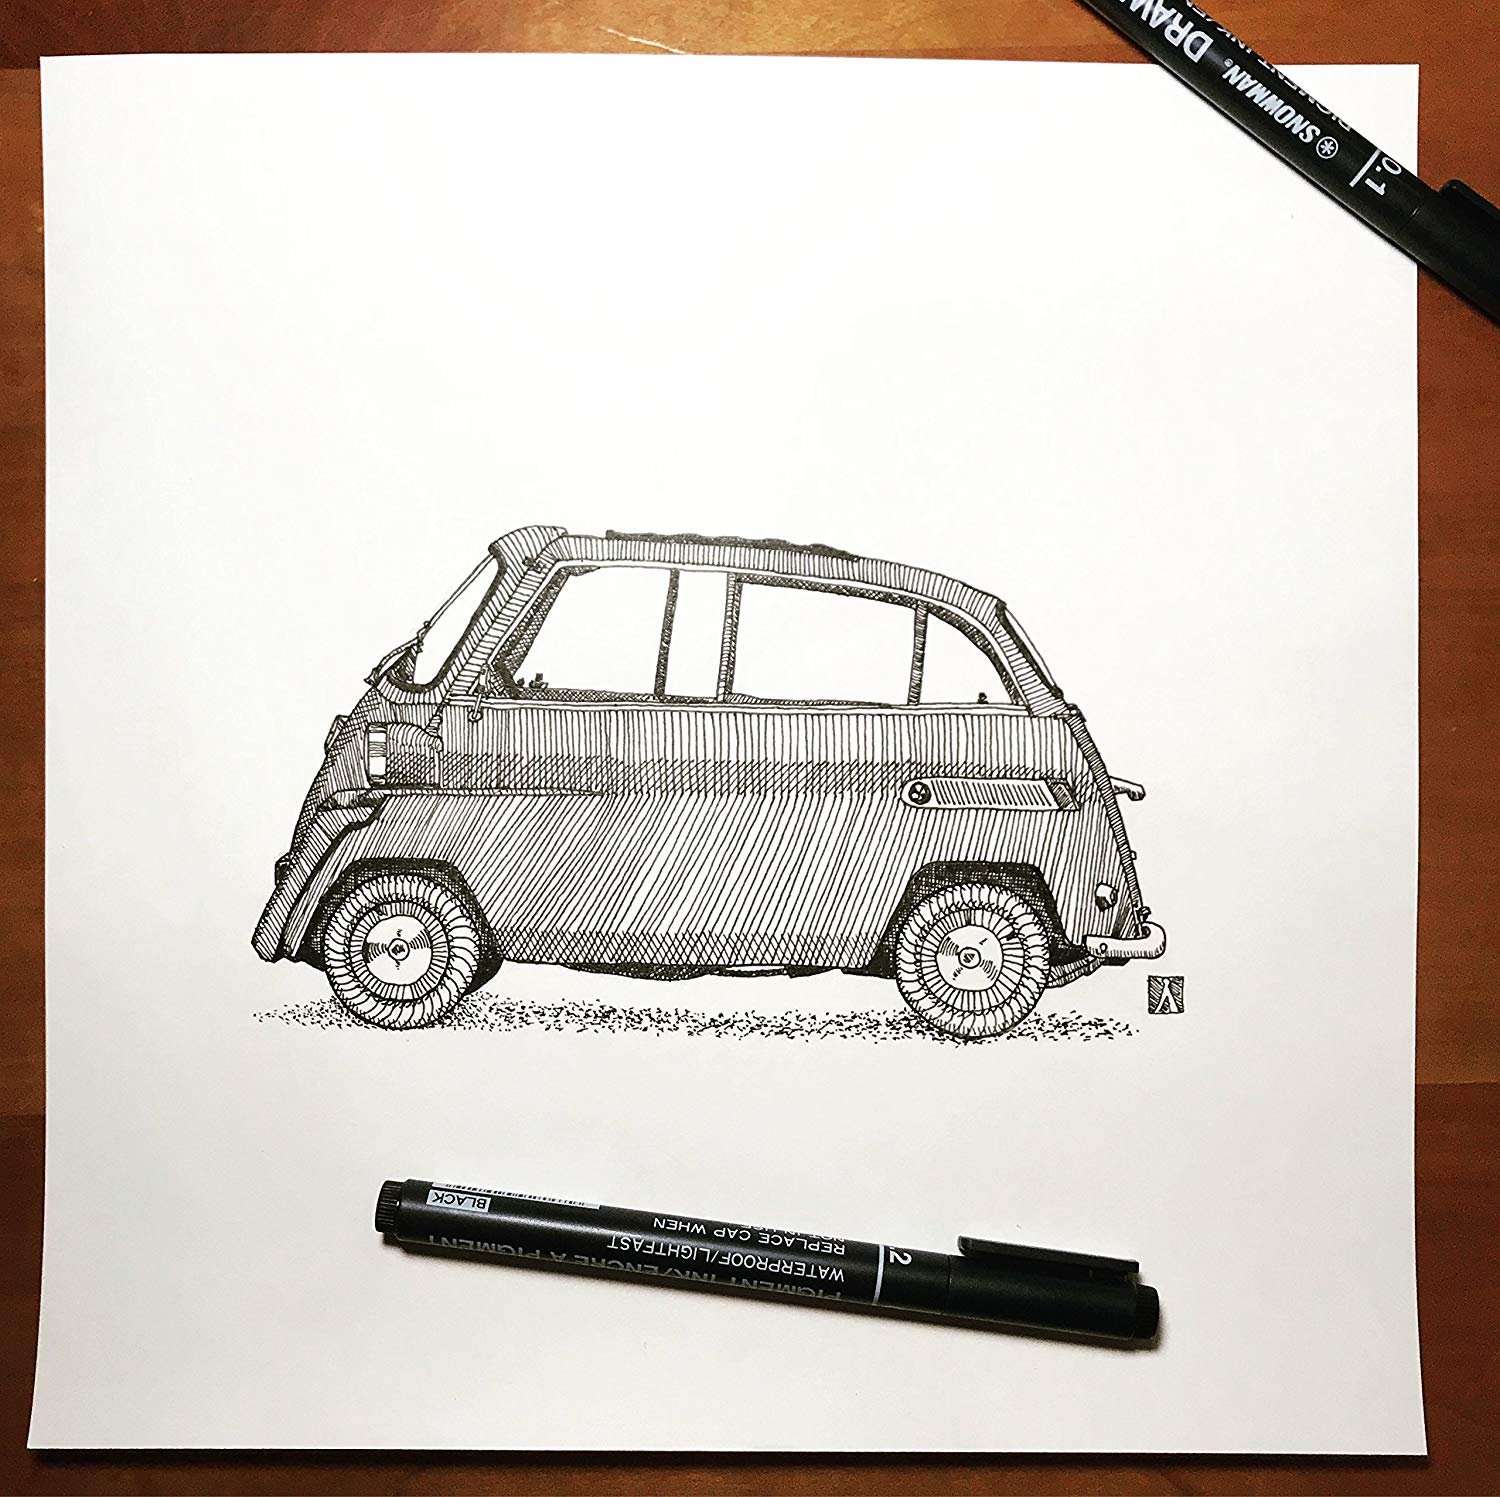 KillerBeeMoto: Original Pen Sketch of Vintage Isetta Micro-Car (Limited Prints Also Available)